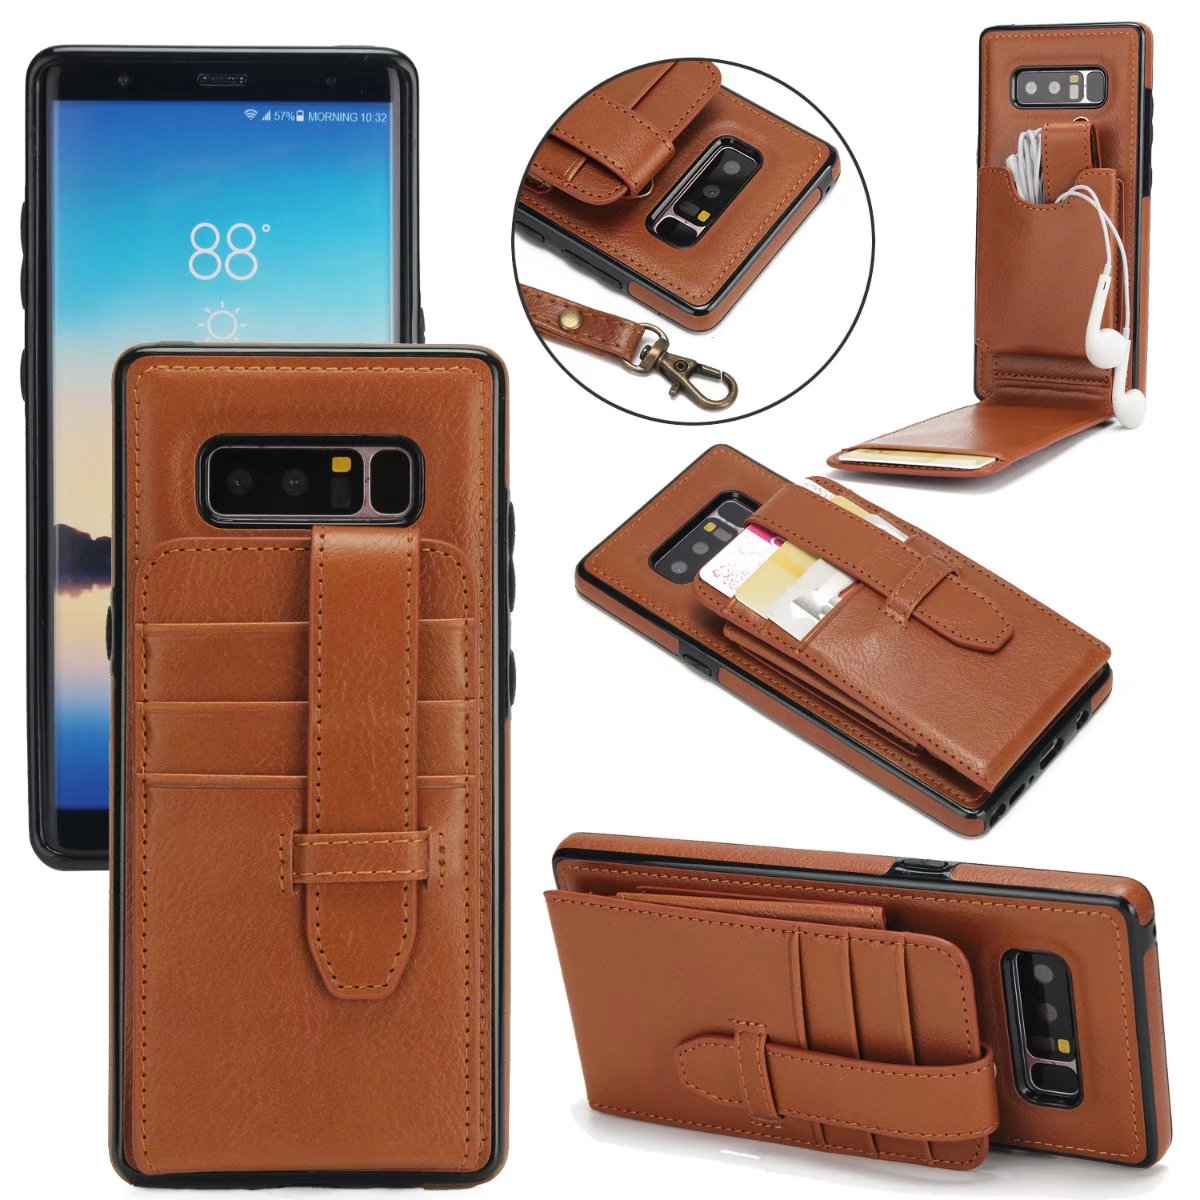 Luxury Leather Flip Case for Samsung Galaxy Note 8 Wallet Book Cover 2-in-1 Vertical Flip for Samsung Note8 Phone Case Holder